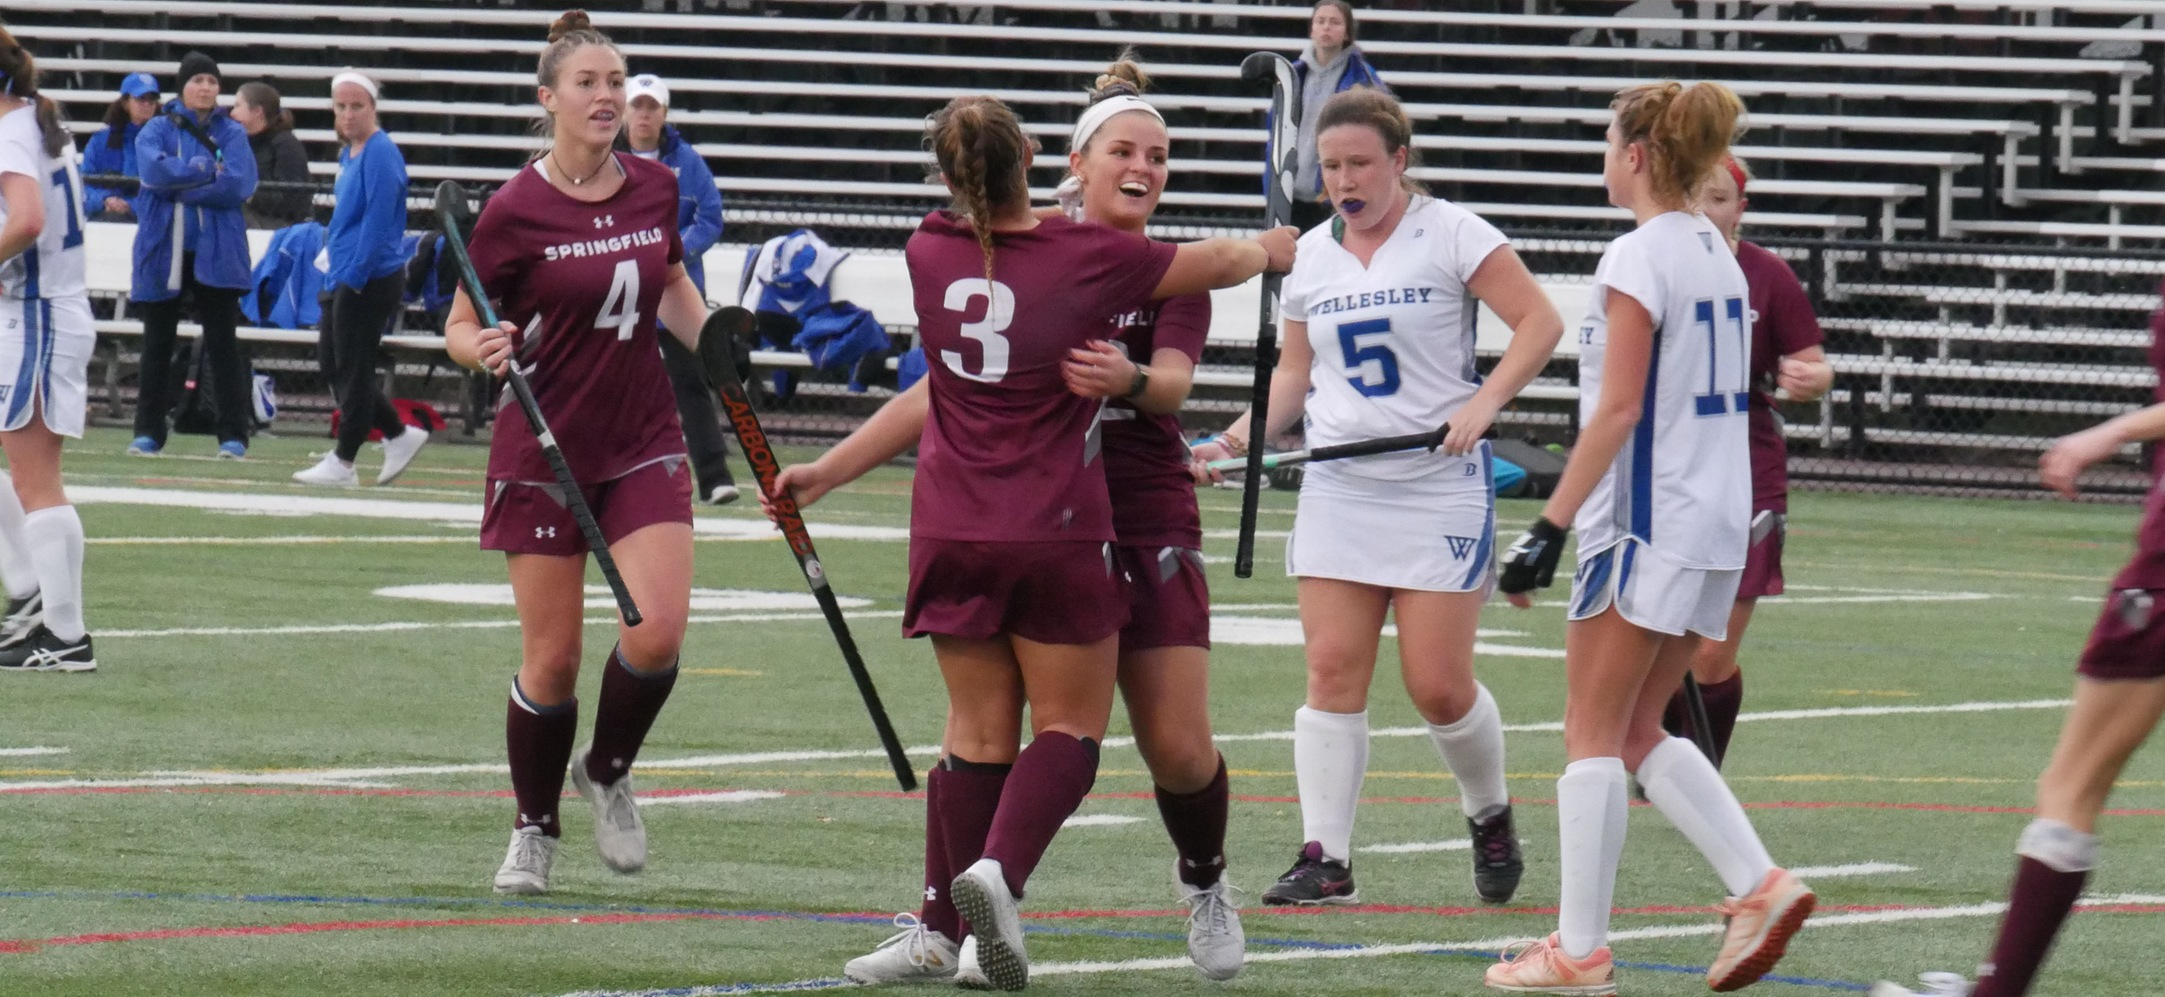 Field Hockey Holds On For 2-1 Victory Over Wellesley In NEWMAC Championship Quarterfinals